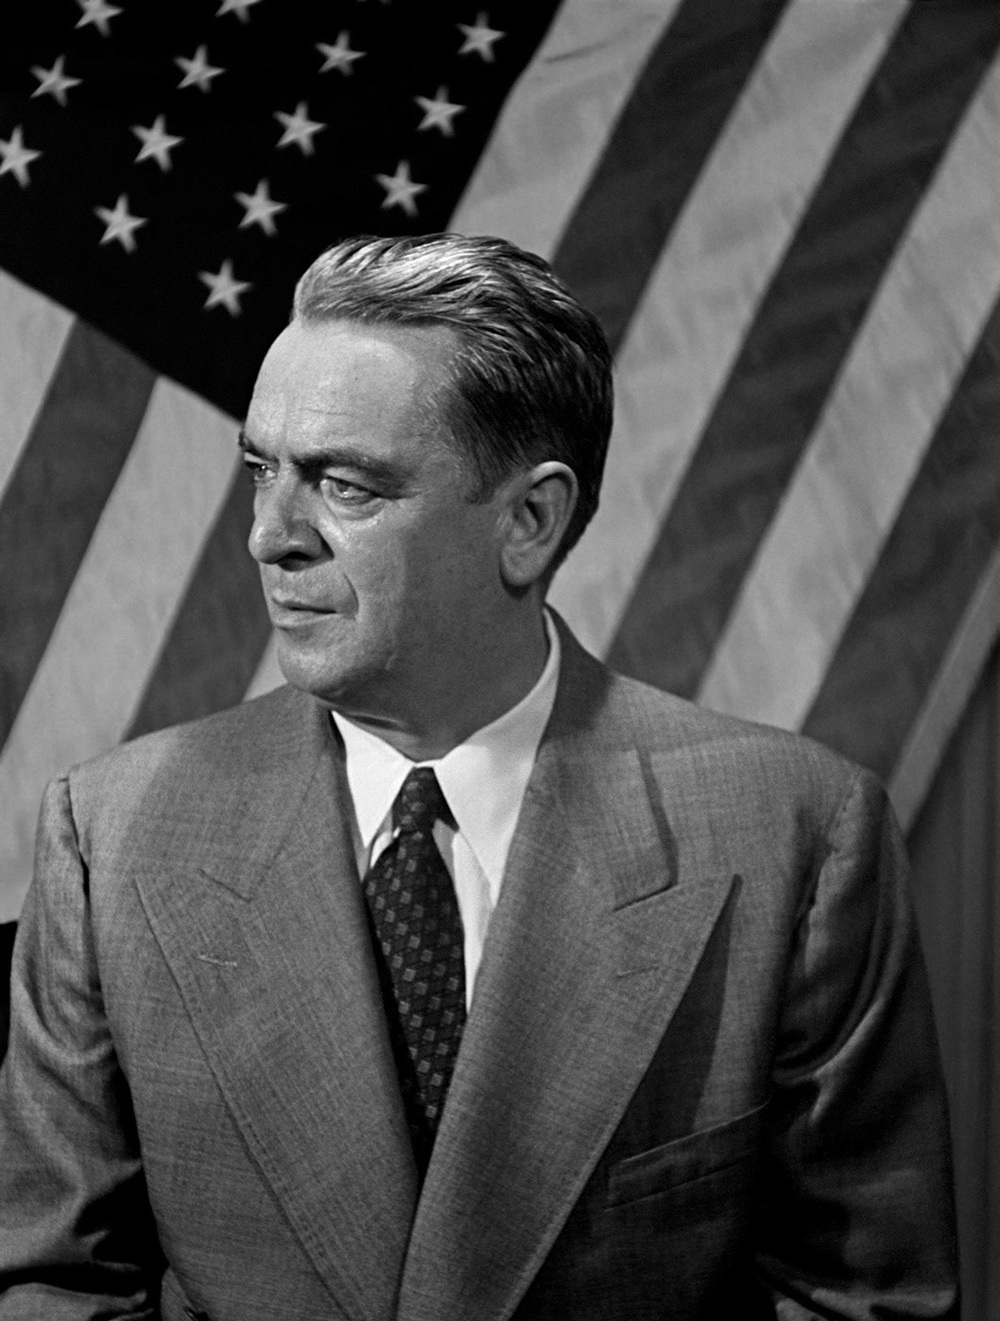 Hon. William O'Dwyer, US Ambassador to Mexico, Mexico 1952